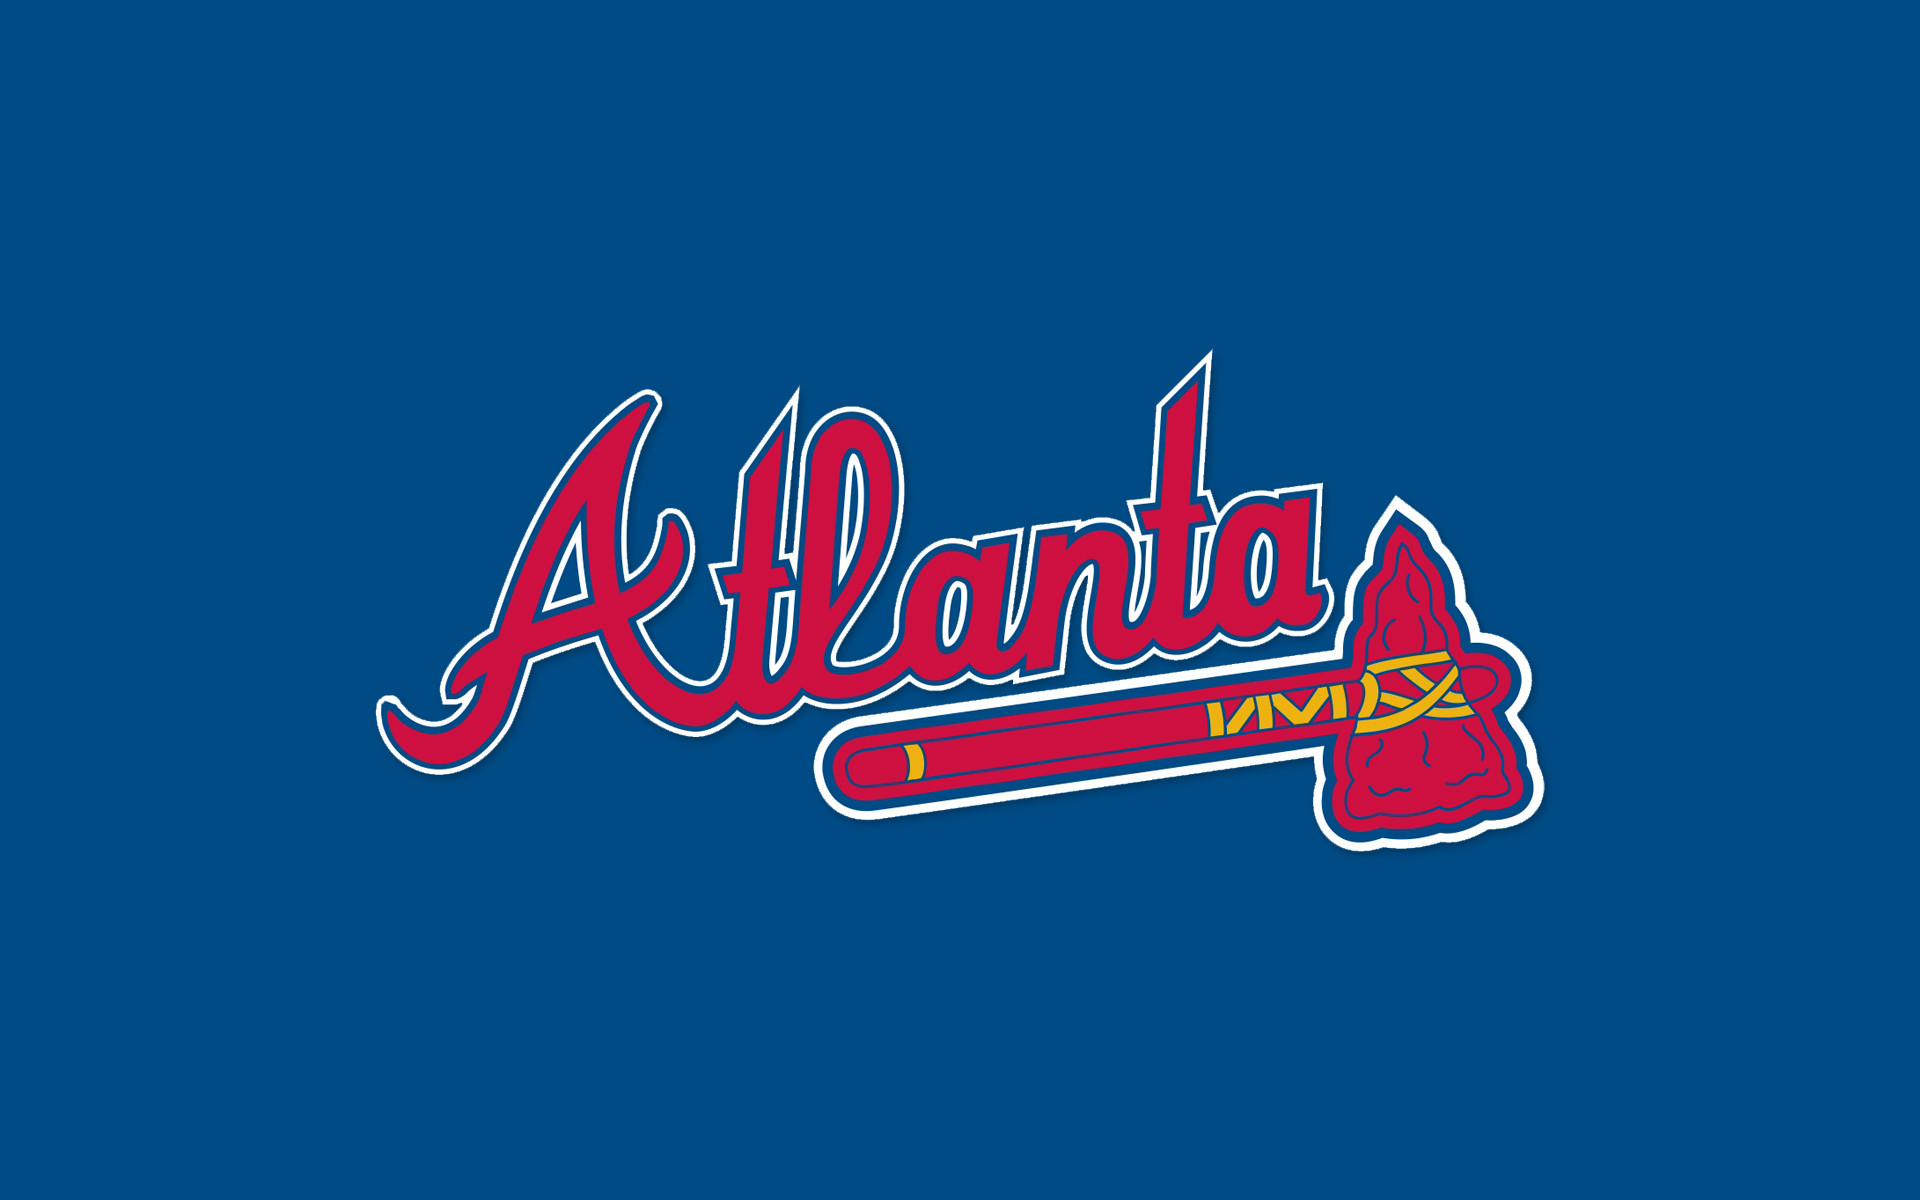 1920x1200 Atlanta Braves Desktop Wallpaper